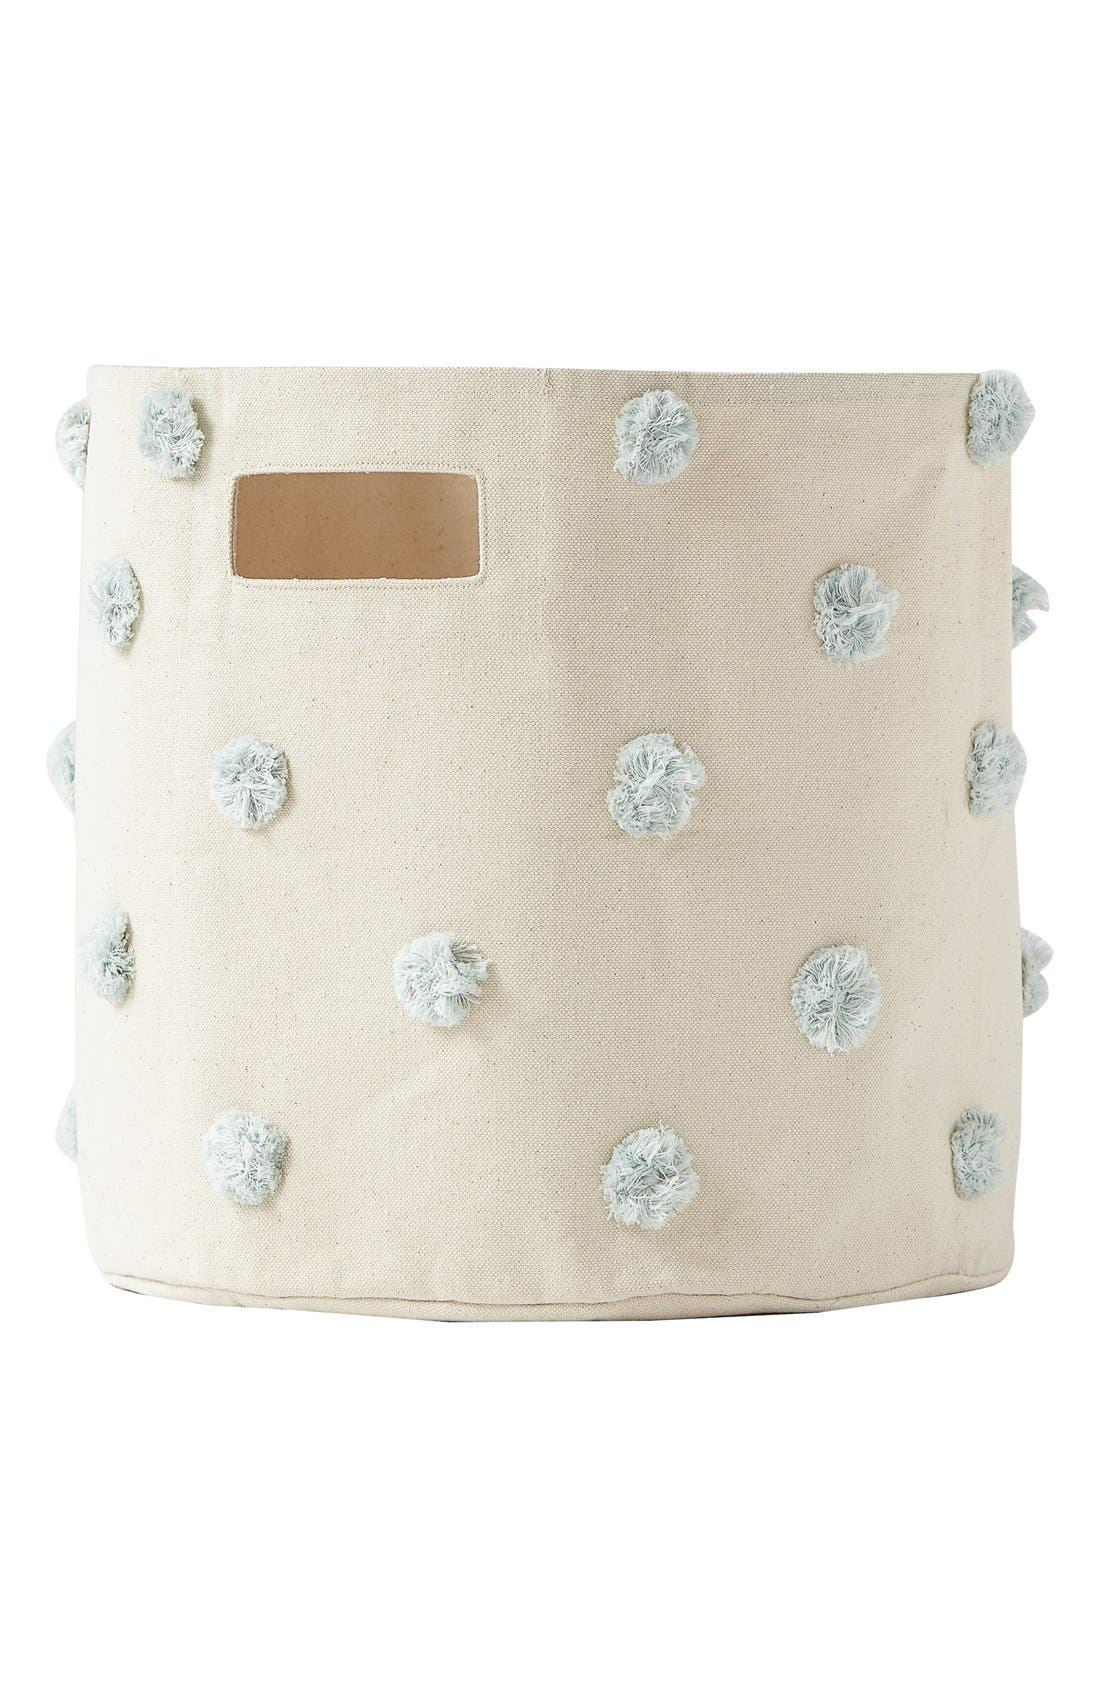 Pompom Canvas Bin,                         Main,                         color, Blue